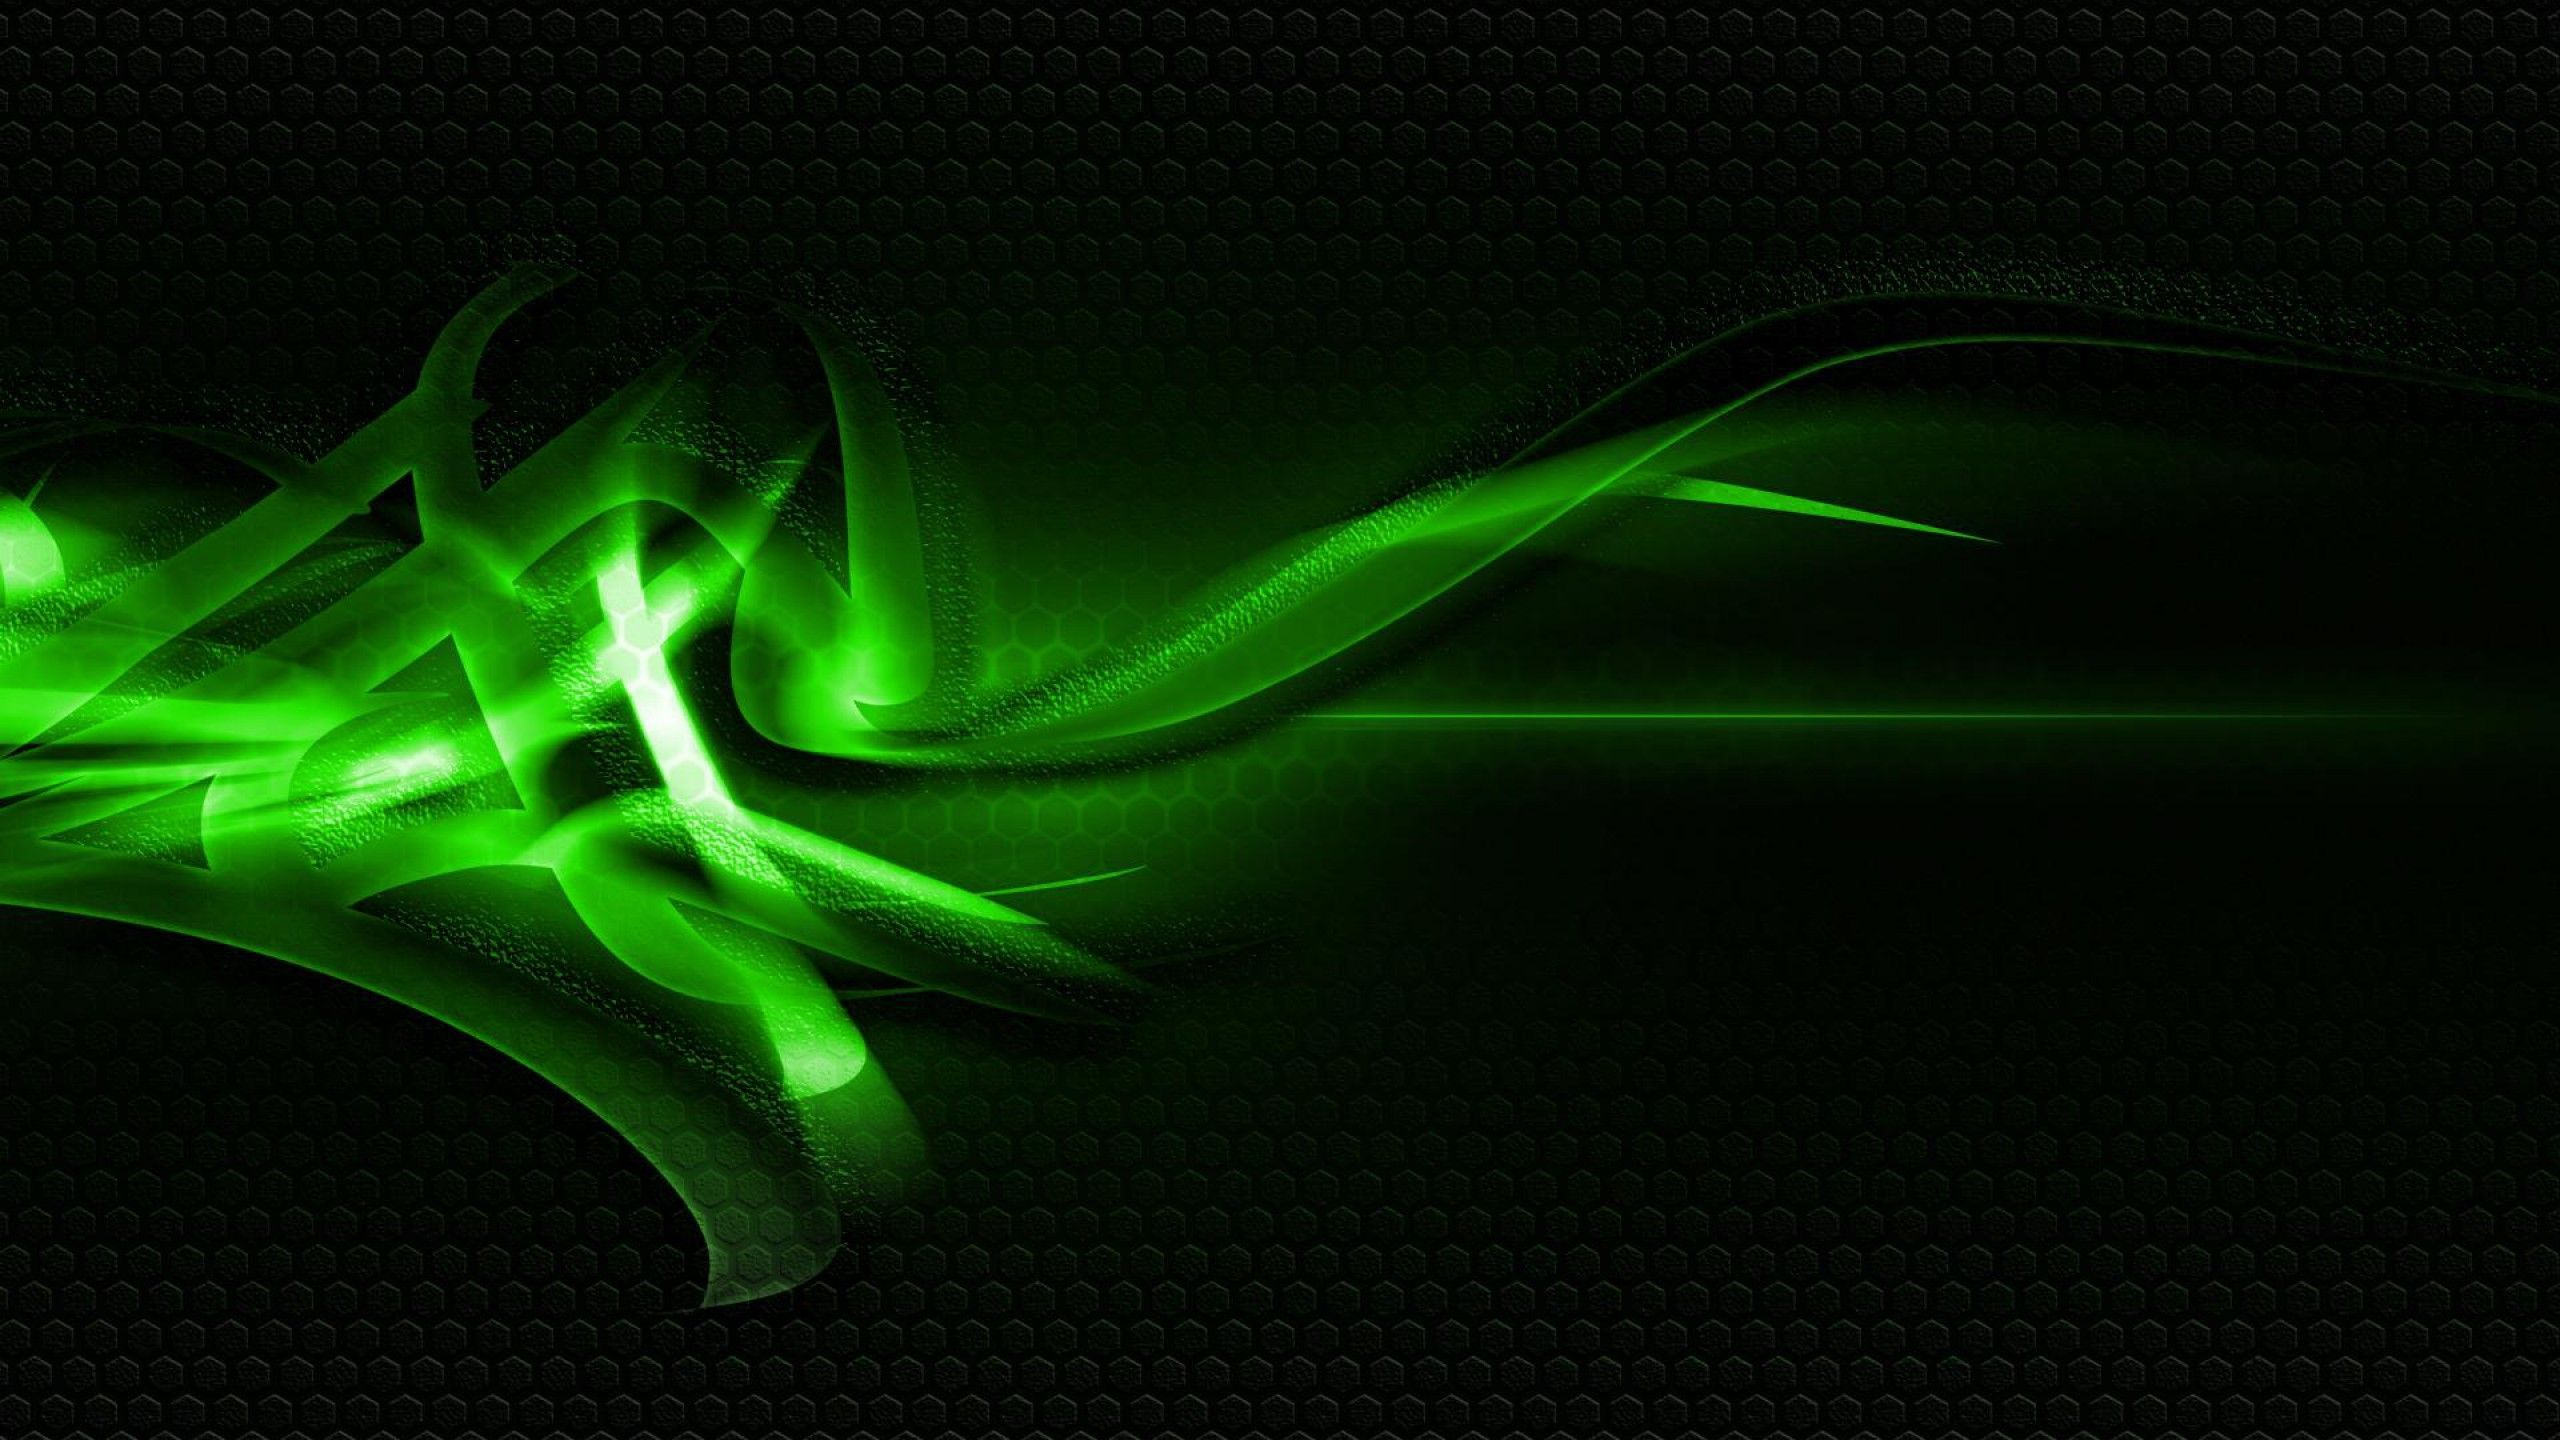 2560x1440 77+ Green Neon Wallpapers on WallpaperPlay